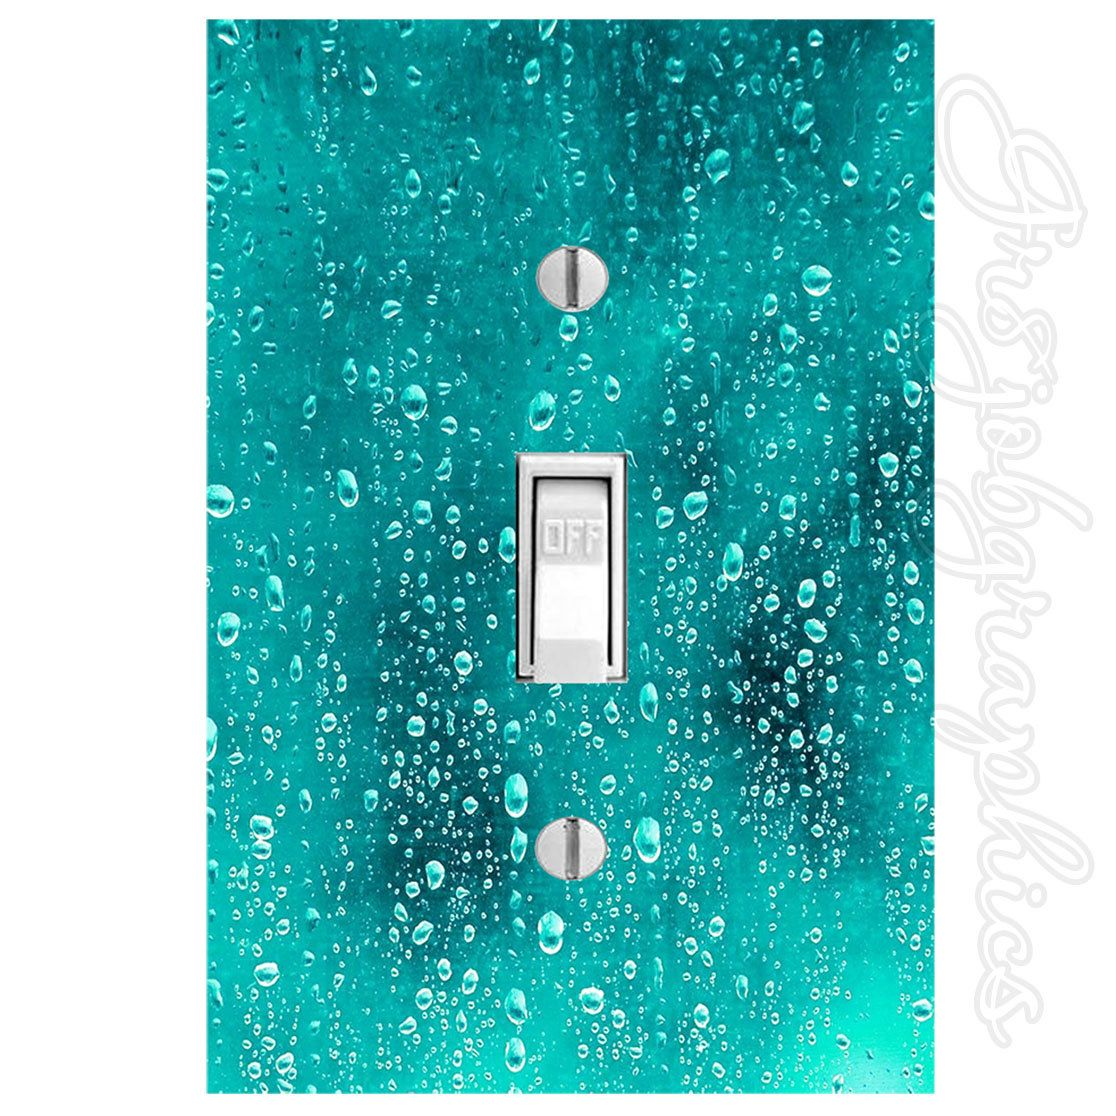 Plastic Light Switch Covers Light Switch Plastic Cover And Decal Water Droplets Cool Waterfall